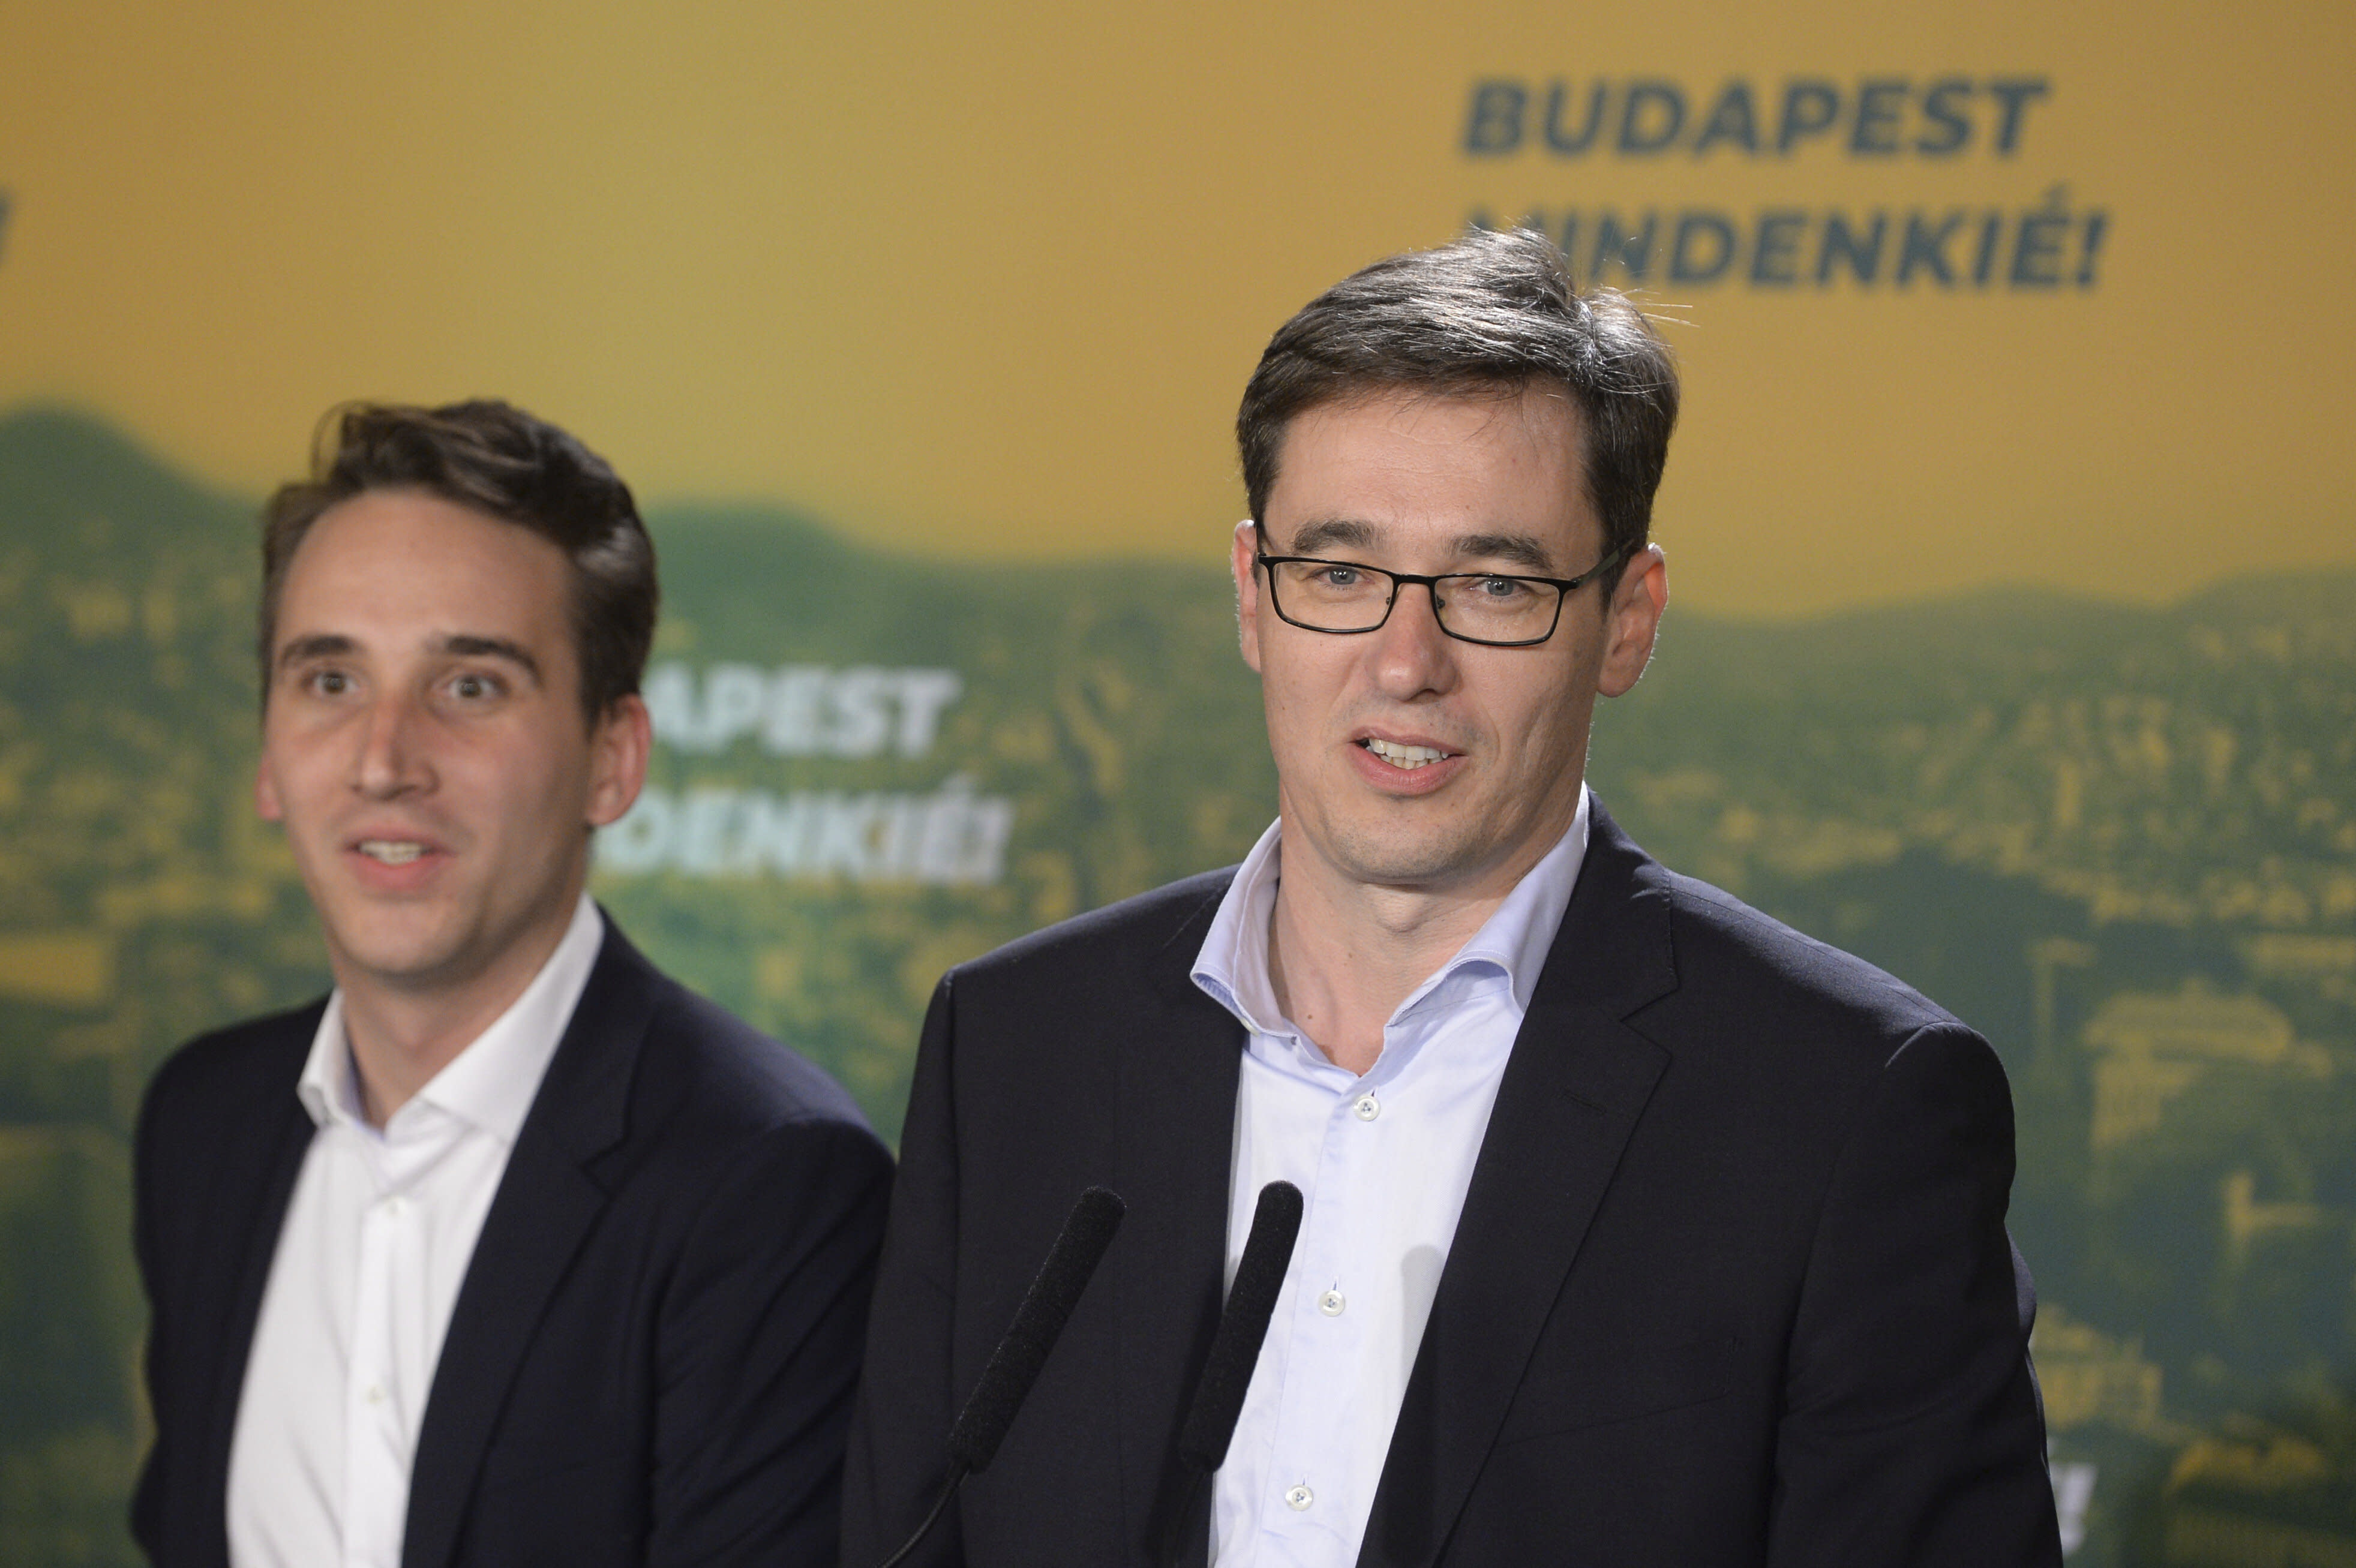 Hungary opposition looks set to win Budapest mayoral race